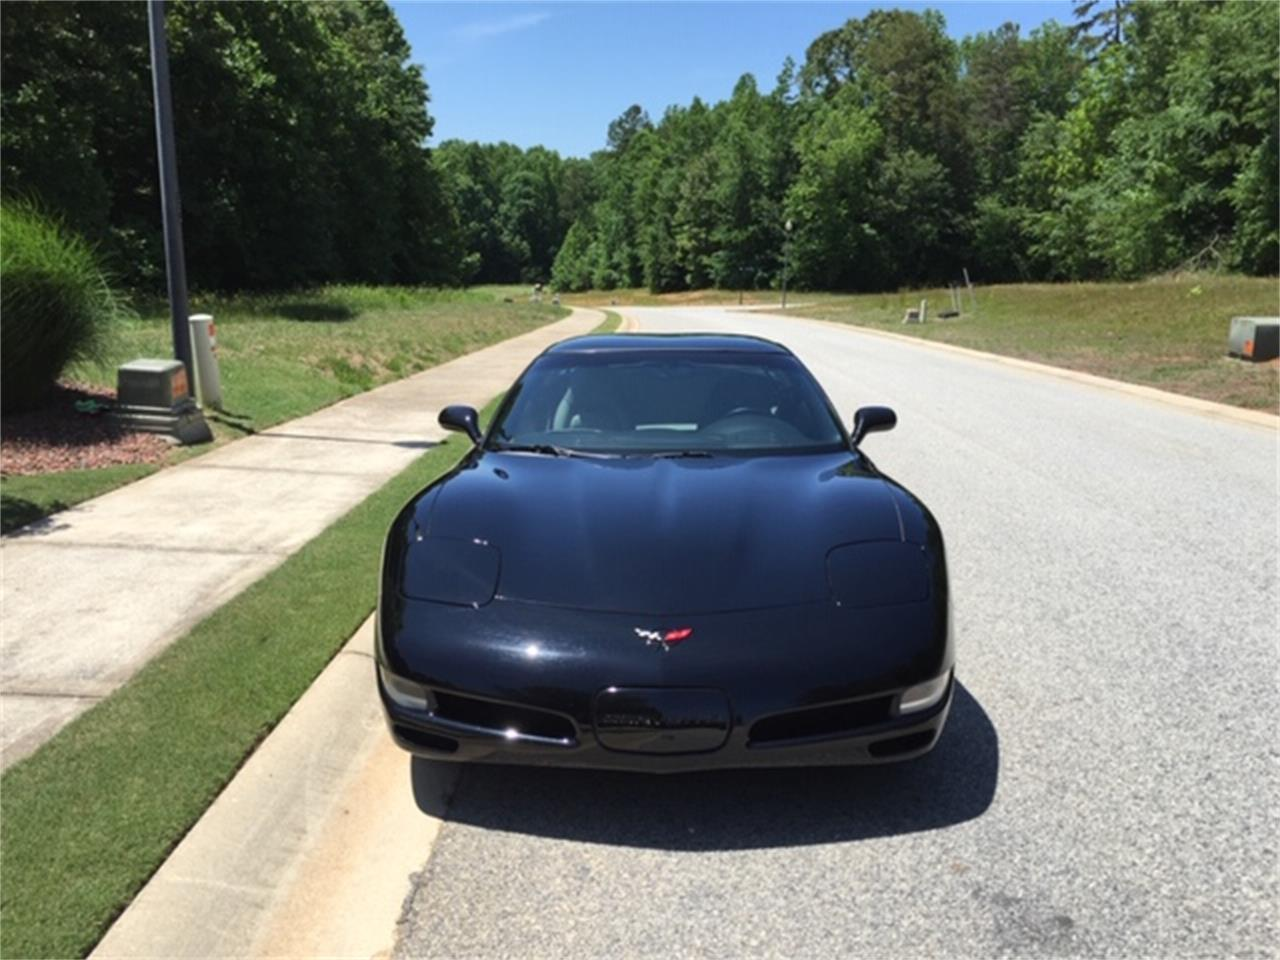 Large Picture of '02 Chevrolet Corvette located in Georgia - $27,900.00 Offered by a Private Seller - PFIC